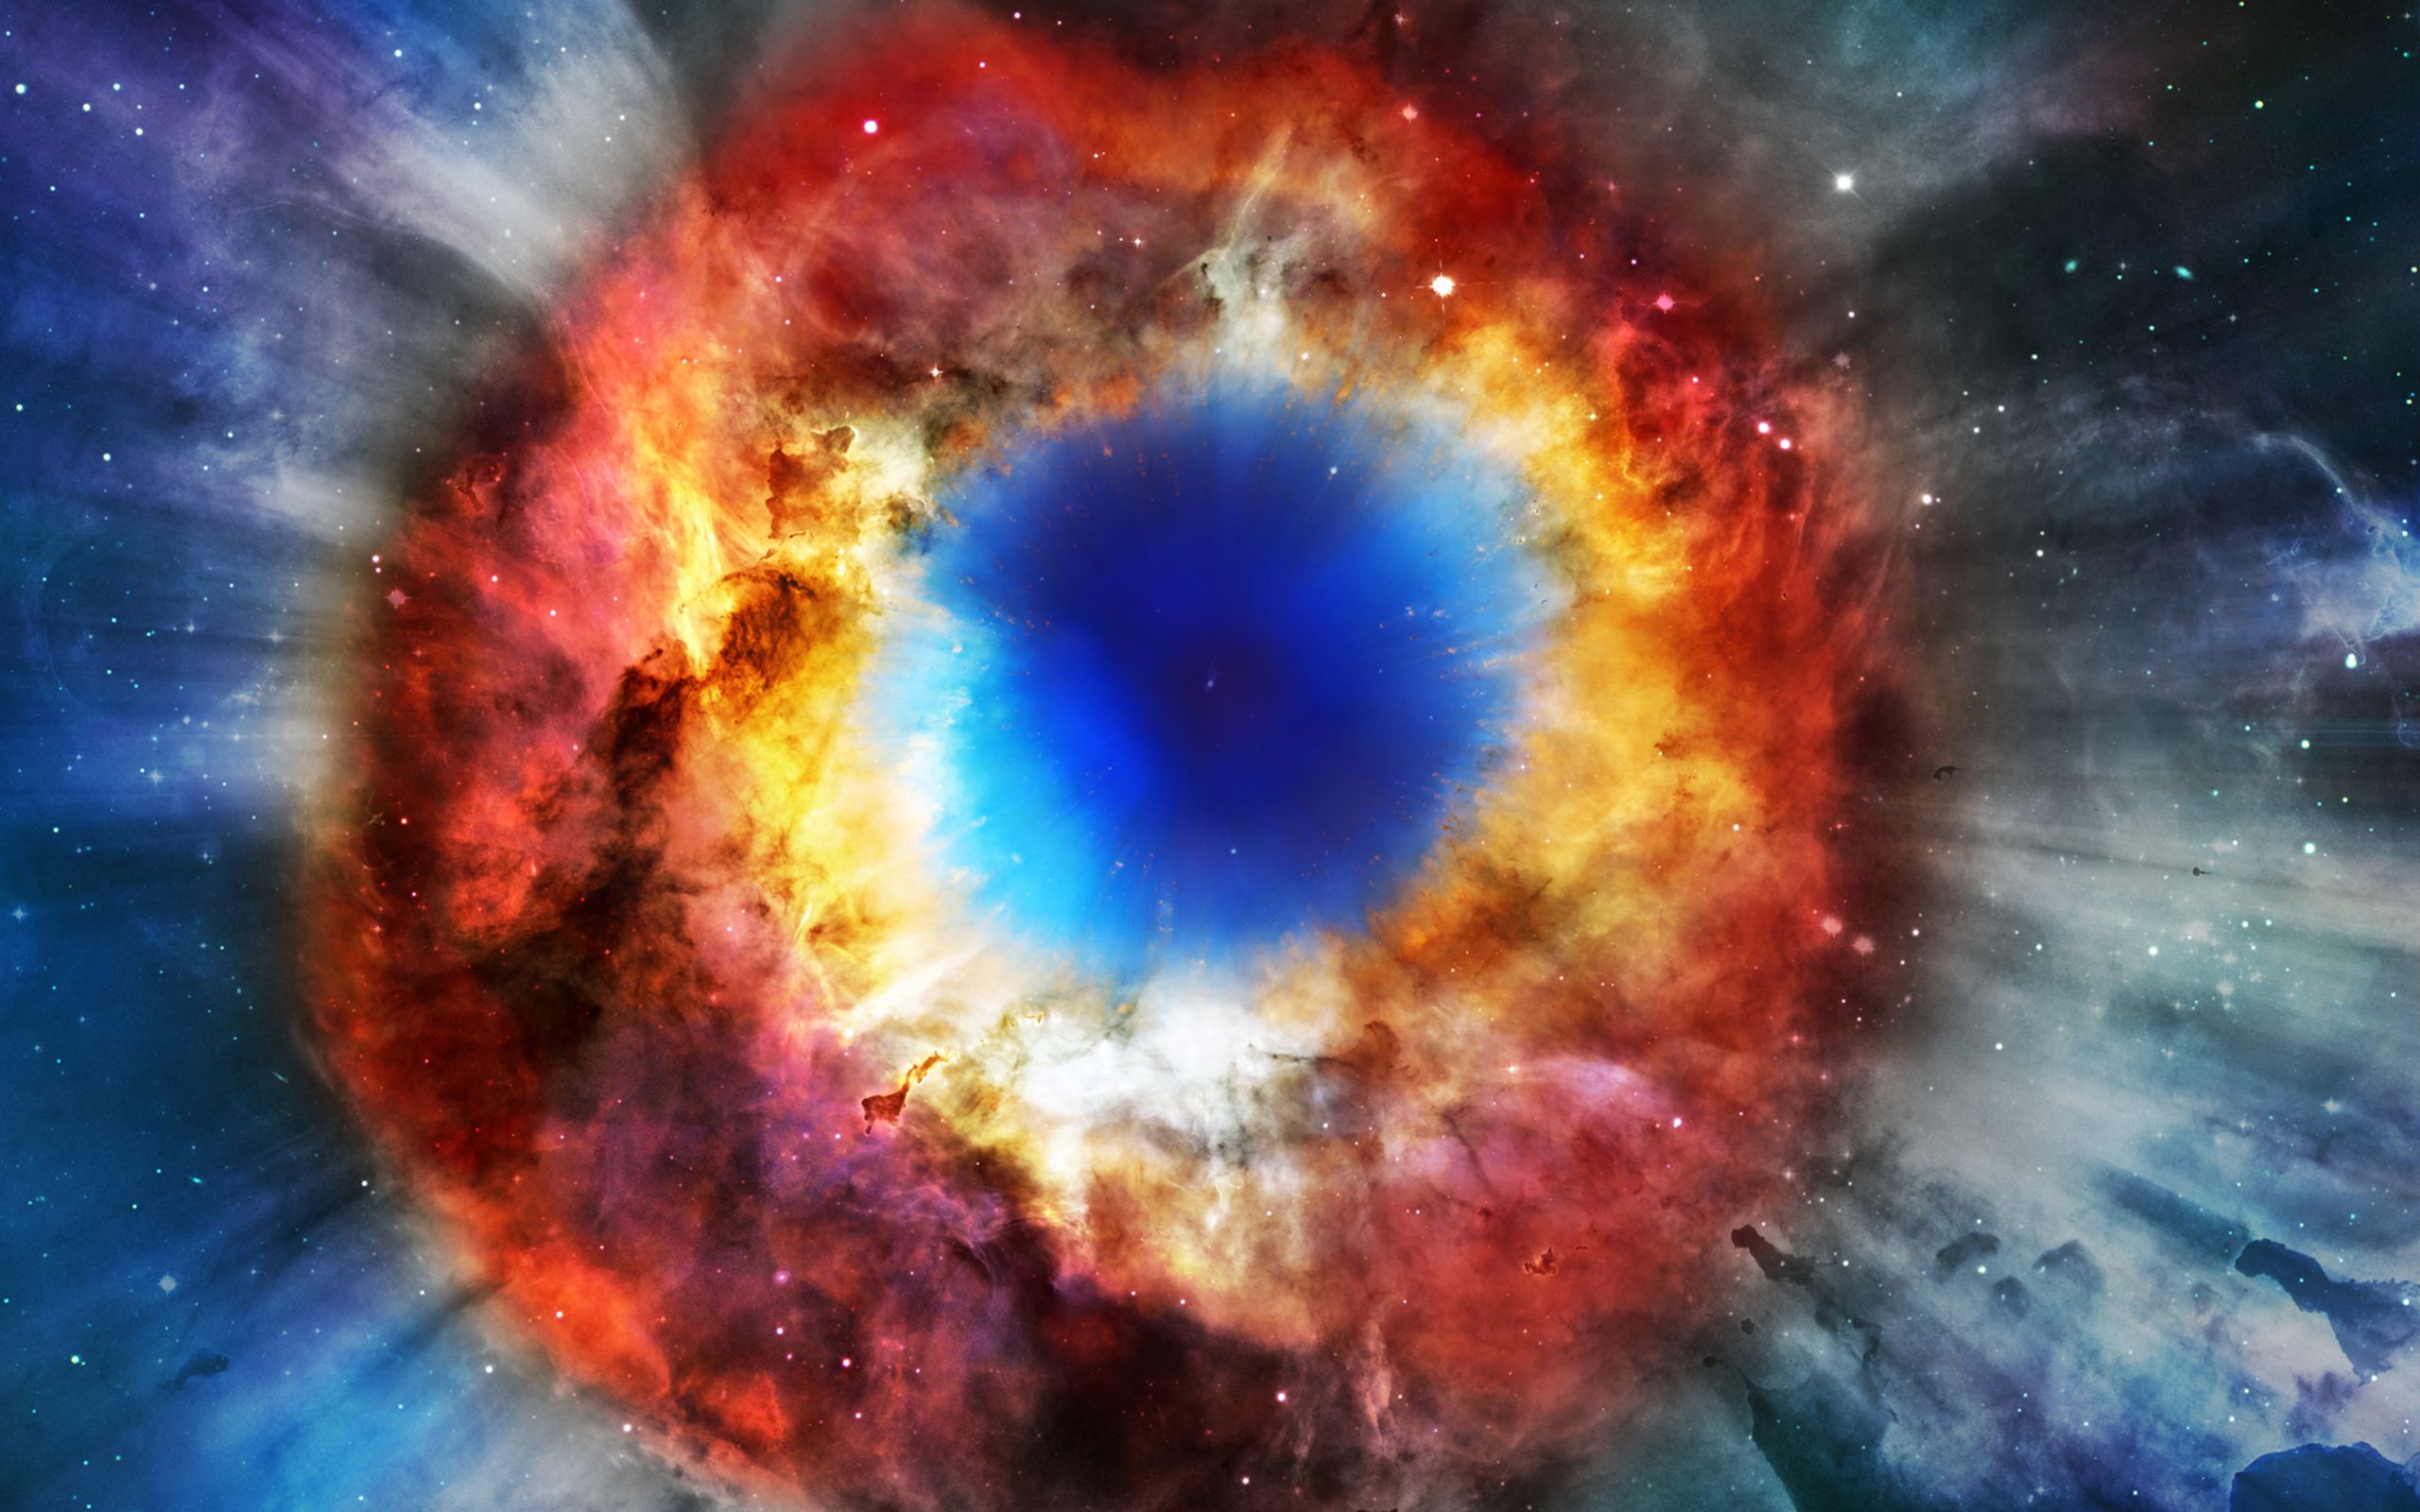 Buy Helix Nebula Cosmos Eye of God Duvet Cover Duvets amp Down Comforters Amazoncom FREE DELIVERY possible on eligible purchases